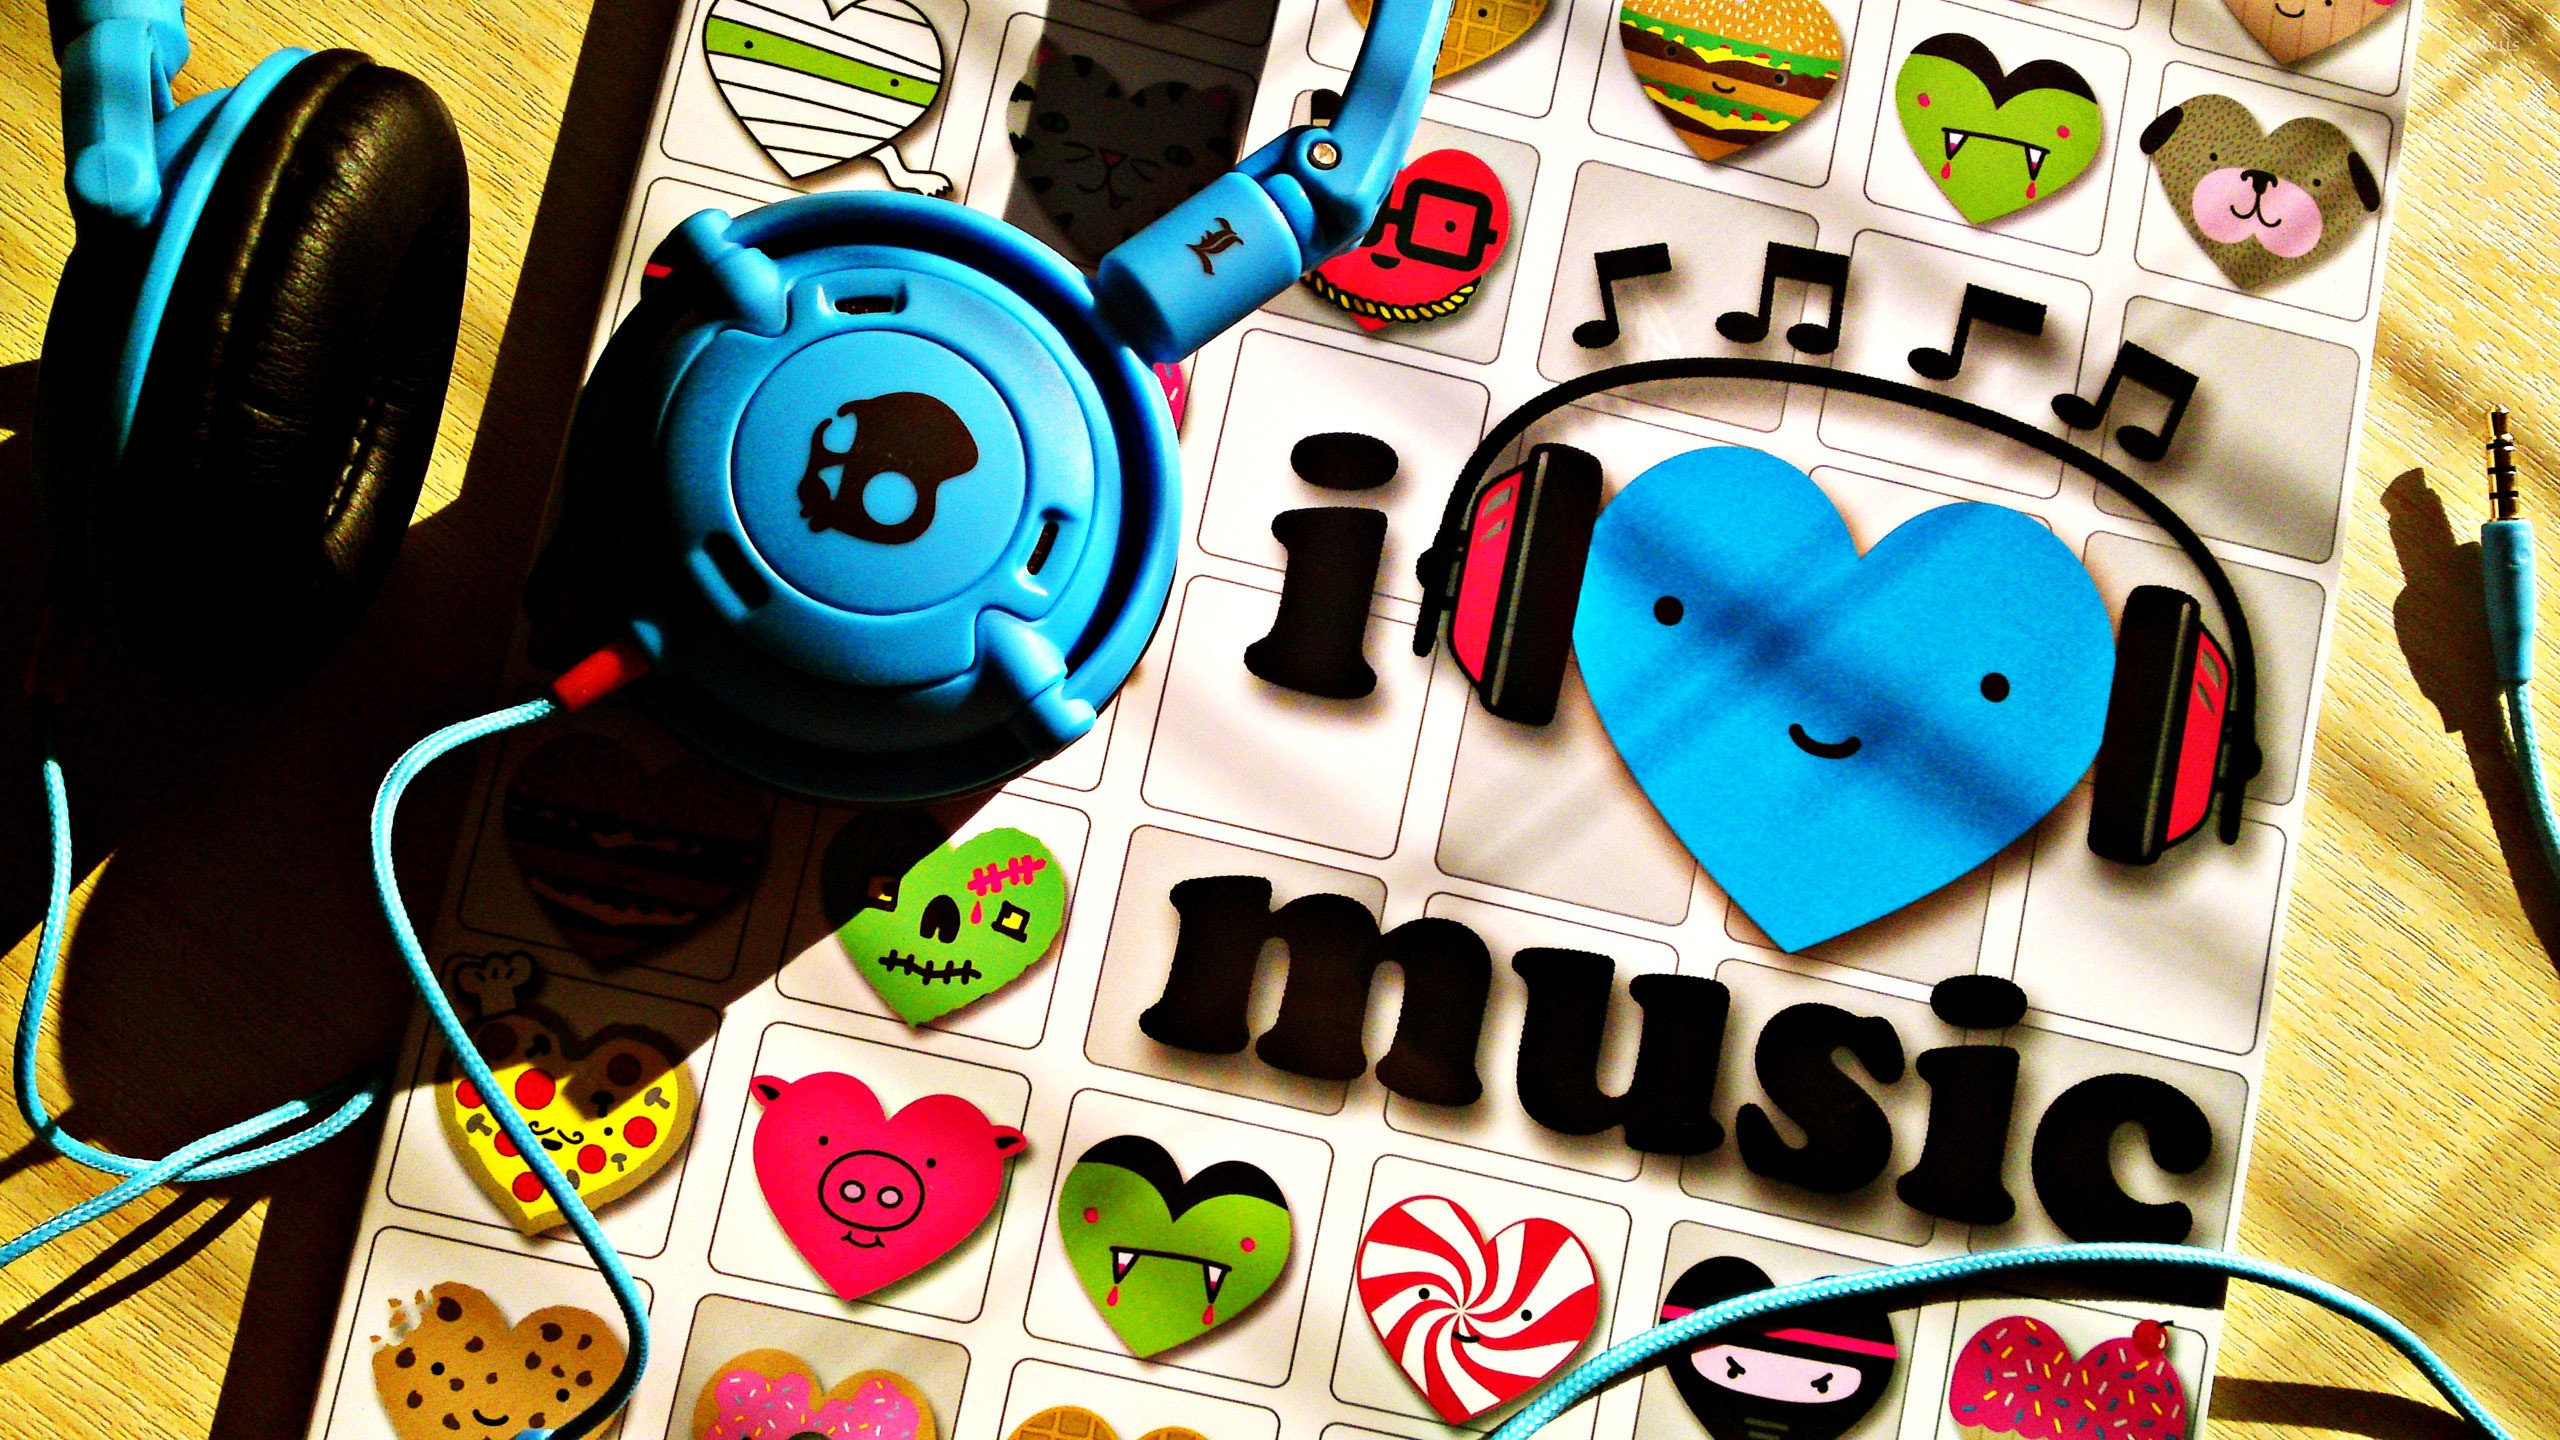 Love Music Android Wallpapers 960x854 Hd Wallpaper For: 53+ Music Wallpapers ·① Download Free Cool HD Wallpapers